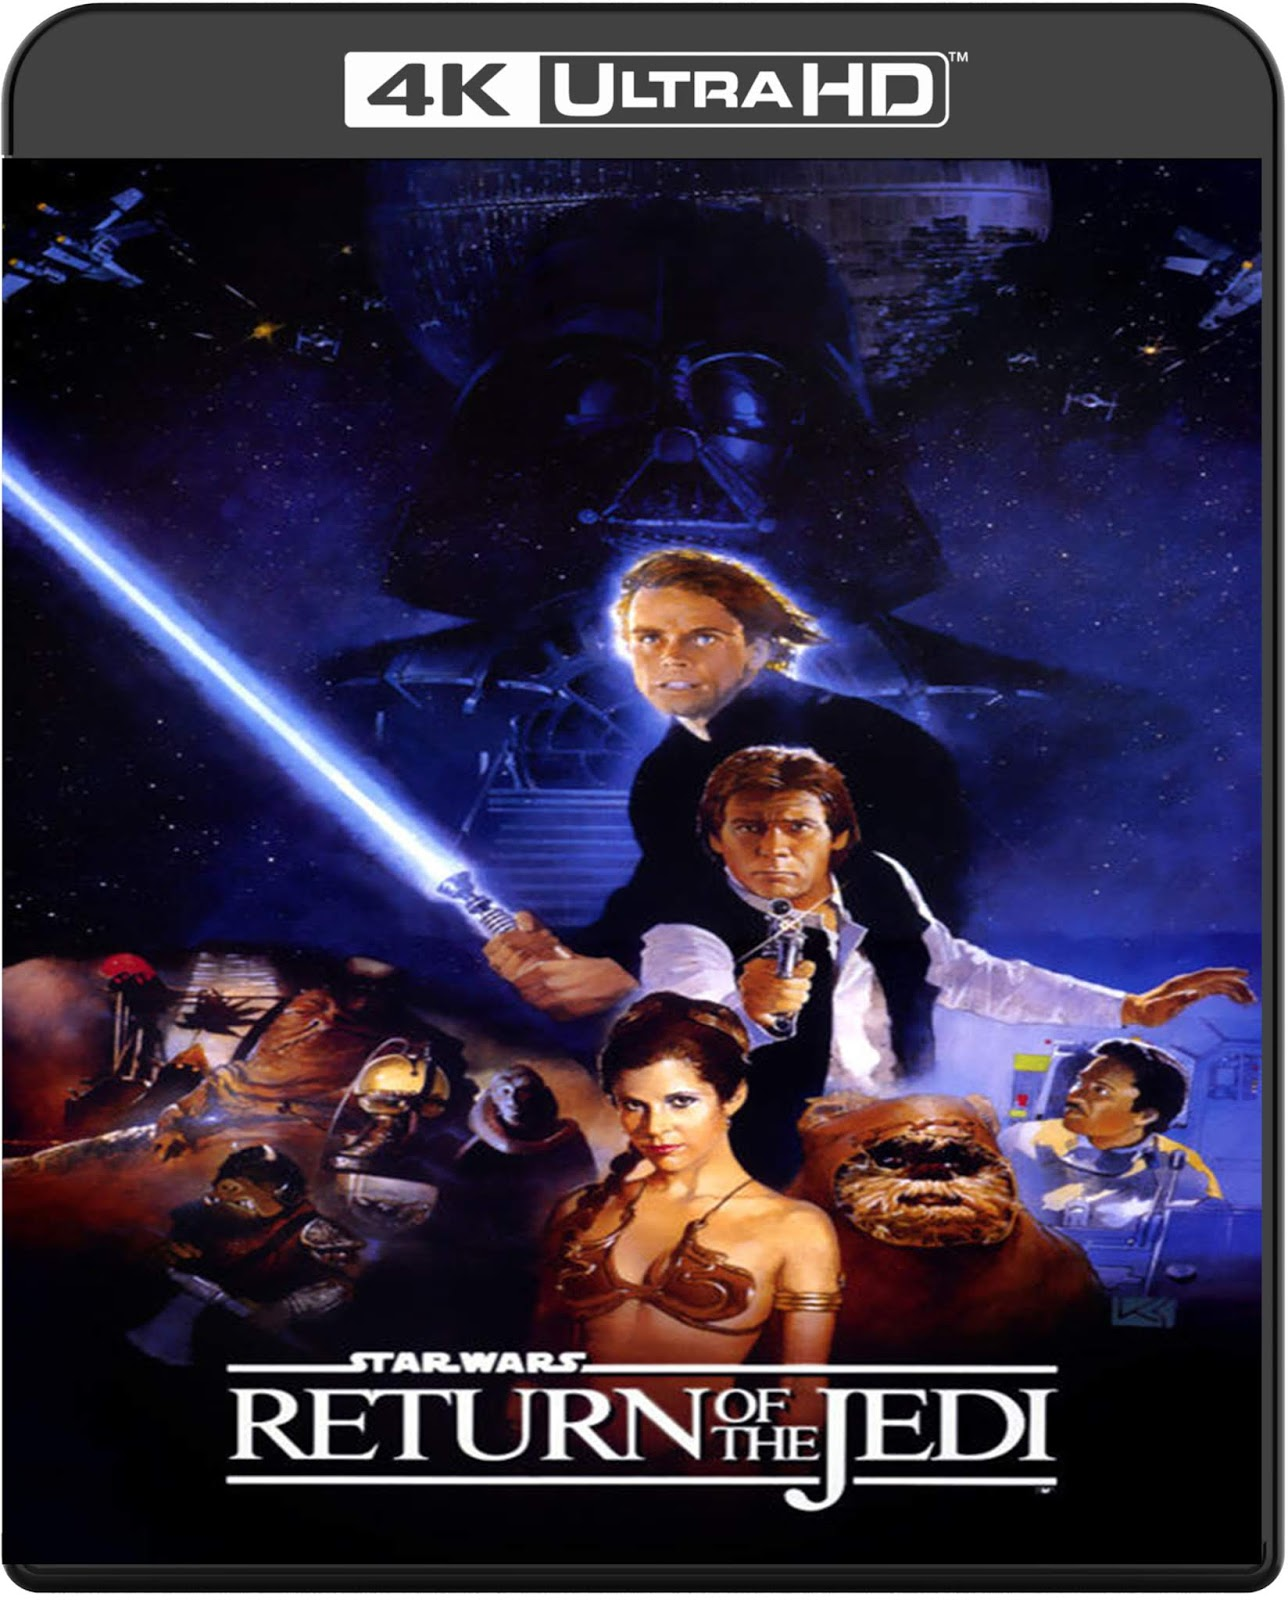 Star Wars. Episode VI: Return of the Jedi [1983] [UHD] [2160p] [Latino]